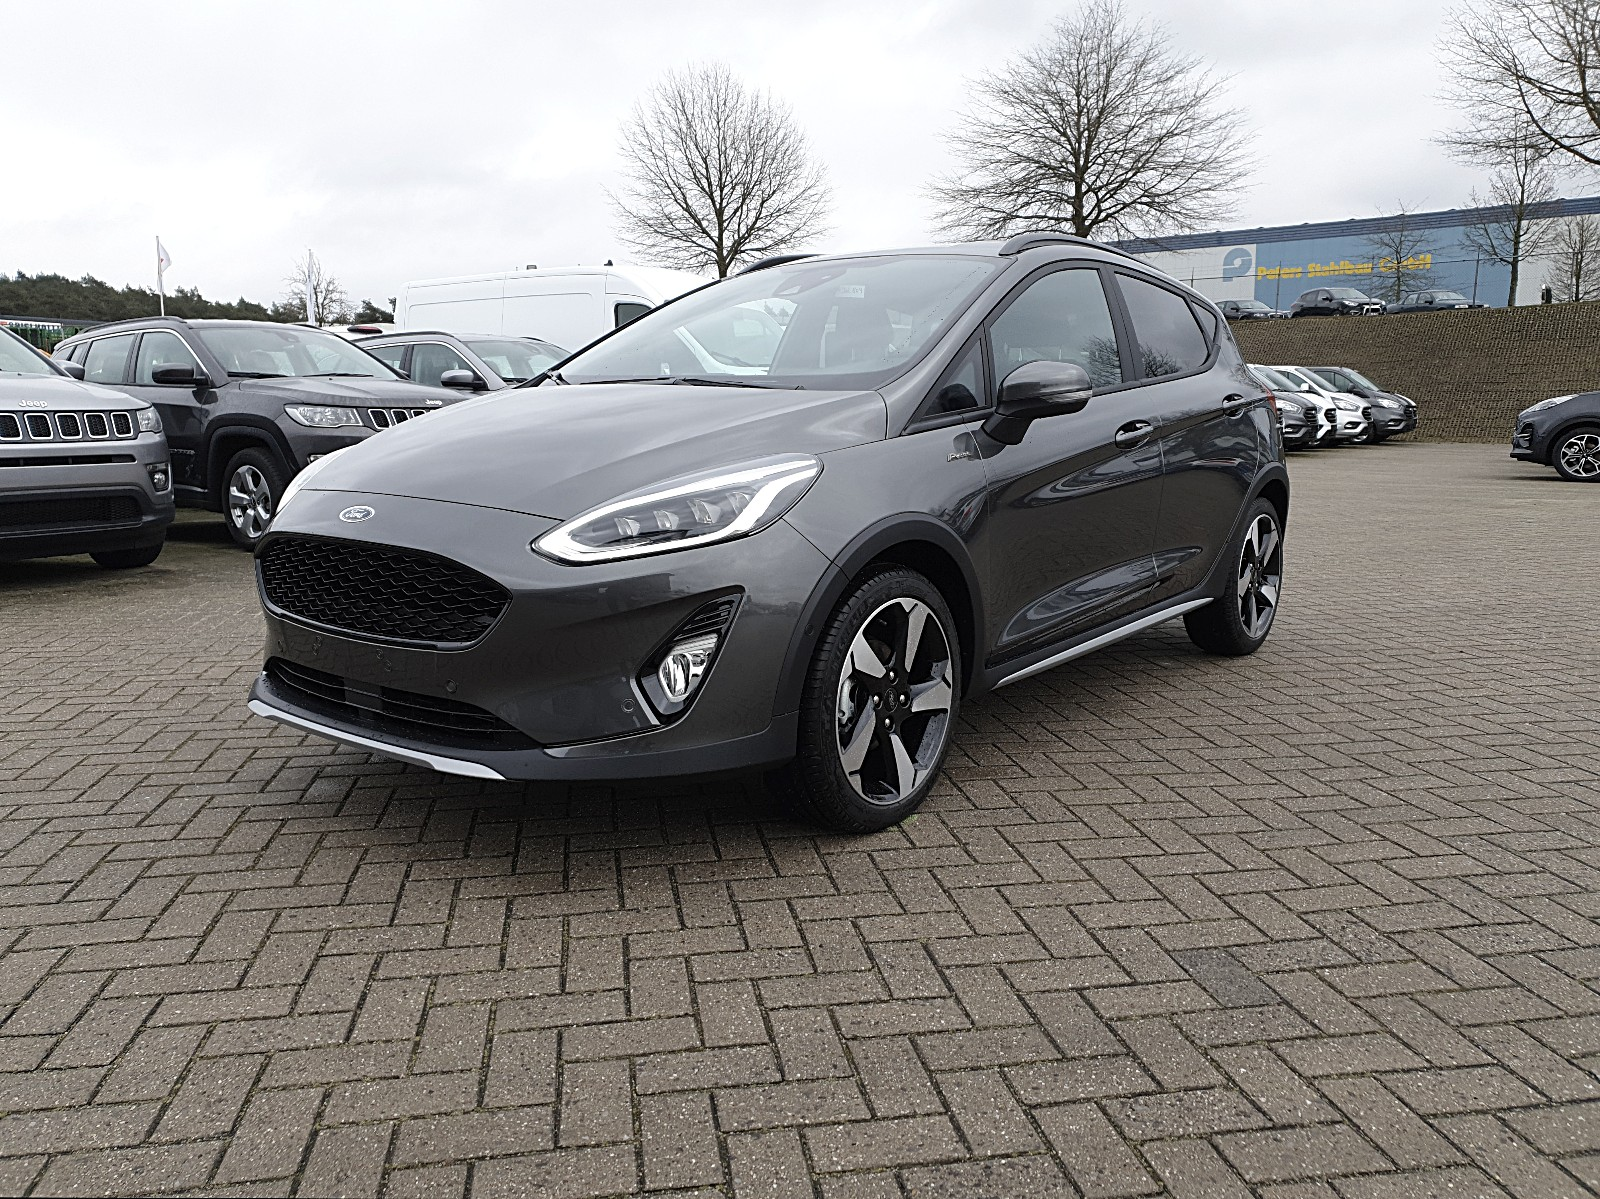 FORD FIESTA Active 1.0 EcoBoost 95PS Klimaautomatik Voll-LED Sitzheizung Len Autosoft BV, Enschede